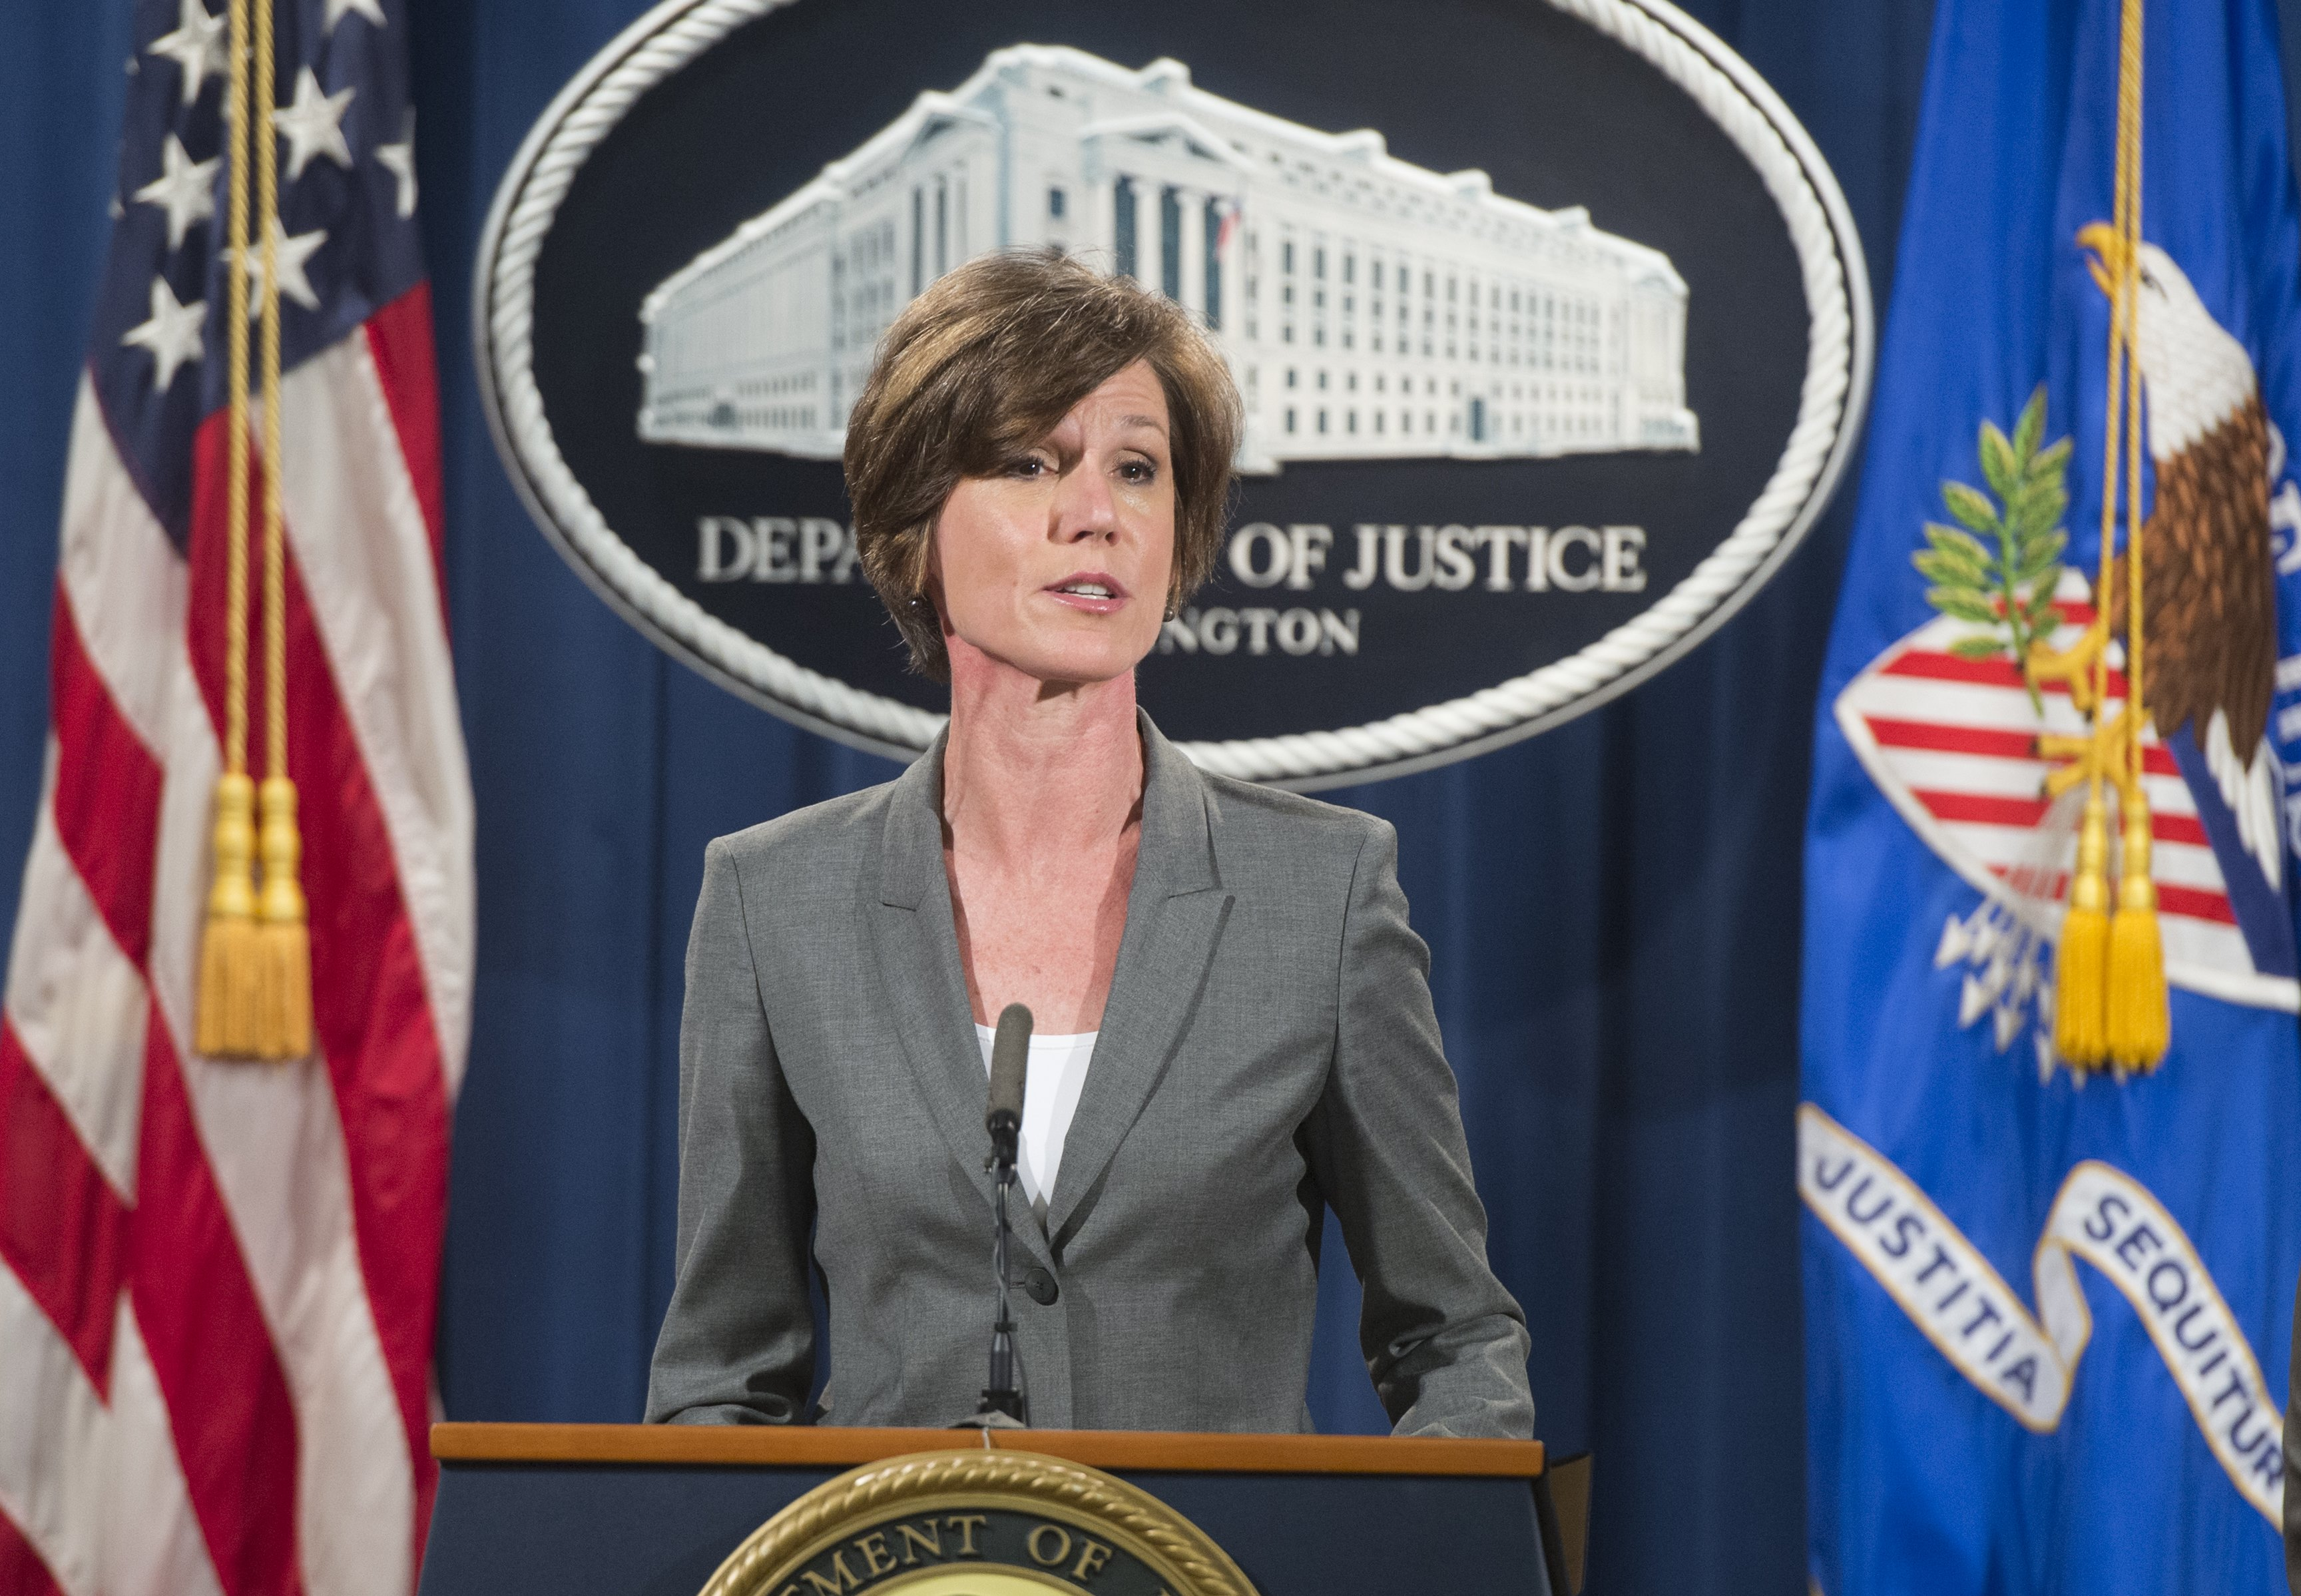 Sally Yates DOJ, Sally Yates department of justice, Sally Yates attorney general